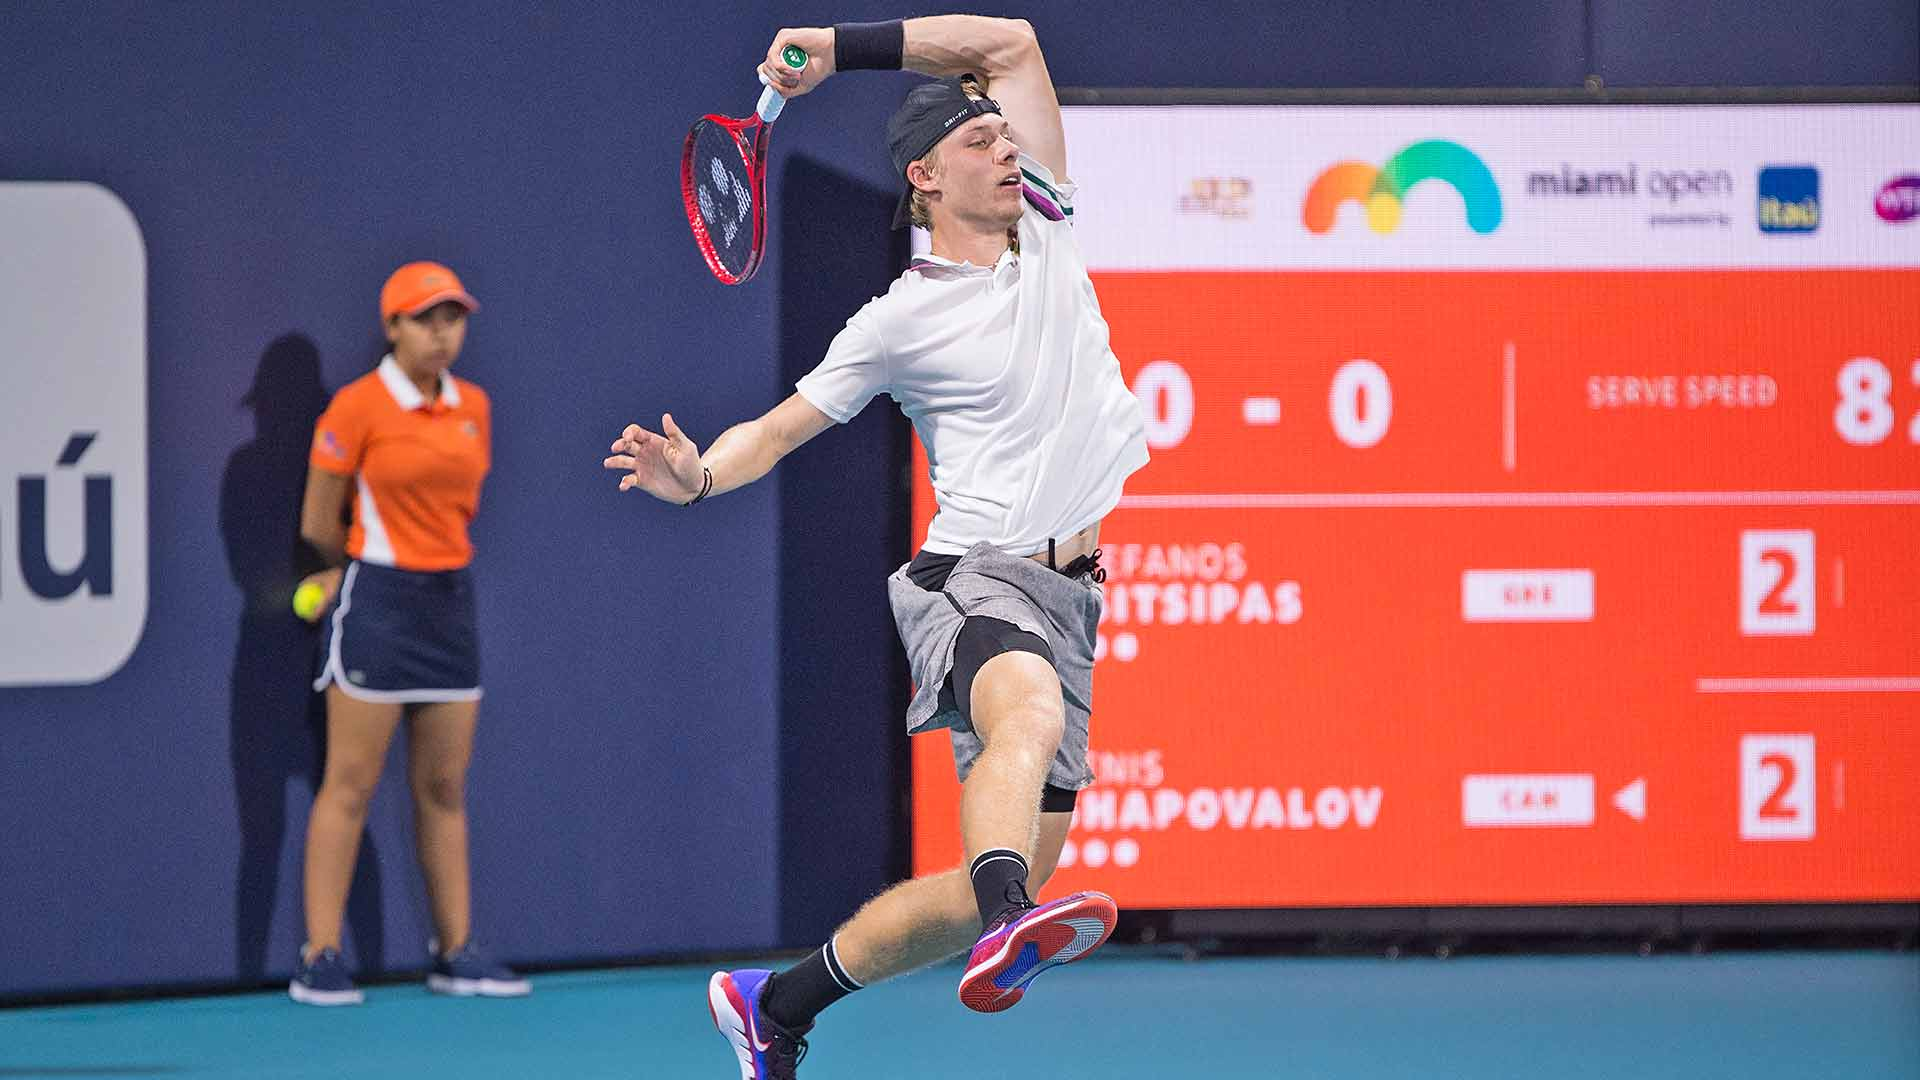 Denis Shapovalov jumps into a forehand at the 2019 Miami Open.